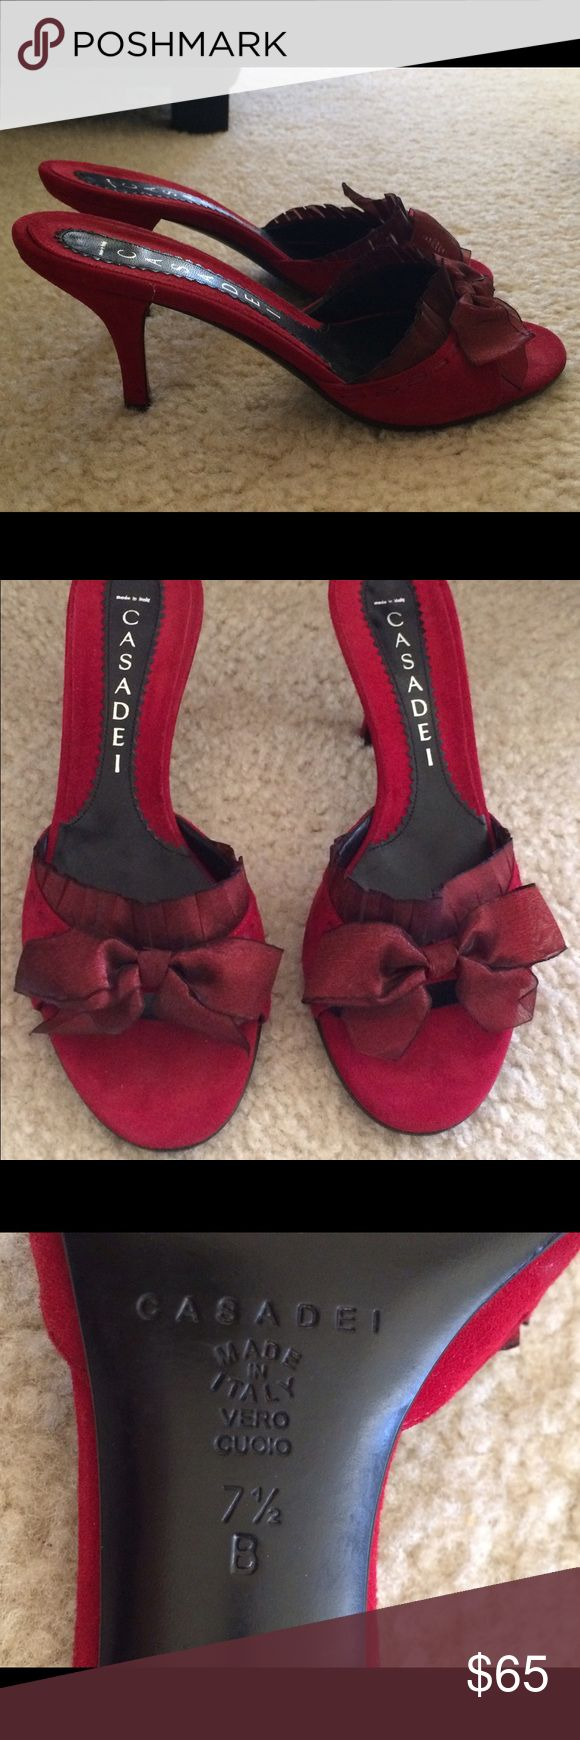 Casadei Beautiful Red Suede Shoes with bow detail Casadei red suede shoes. Very gently used only once or twice. In perfect condition. 7.5 B  Originally bought at Nieman Marcus. Casadei Shoes